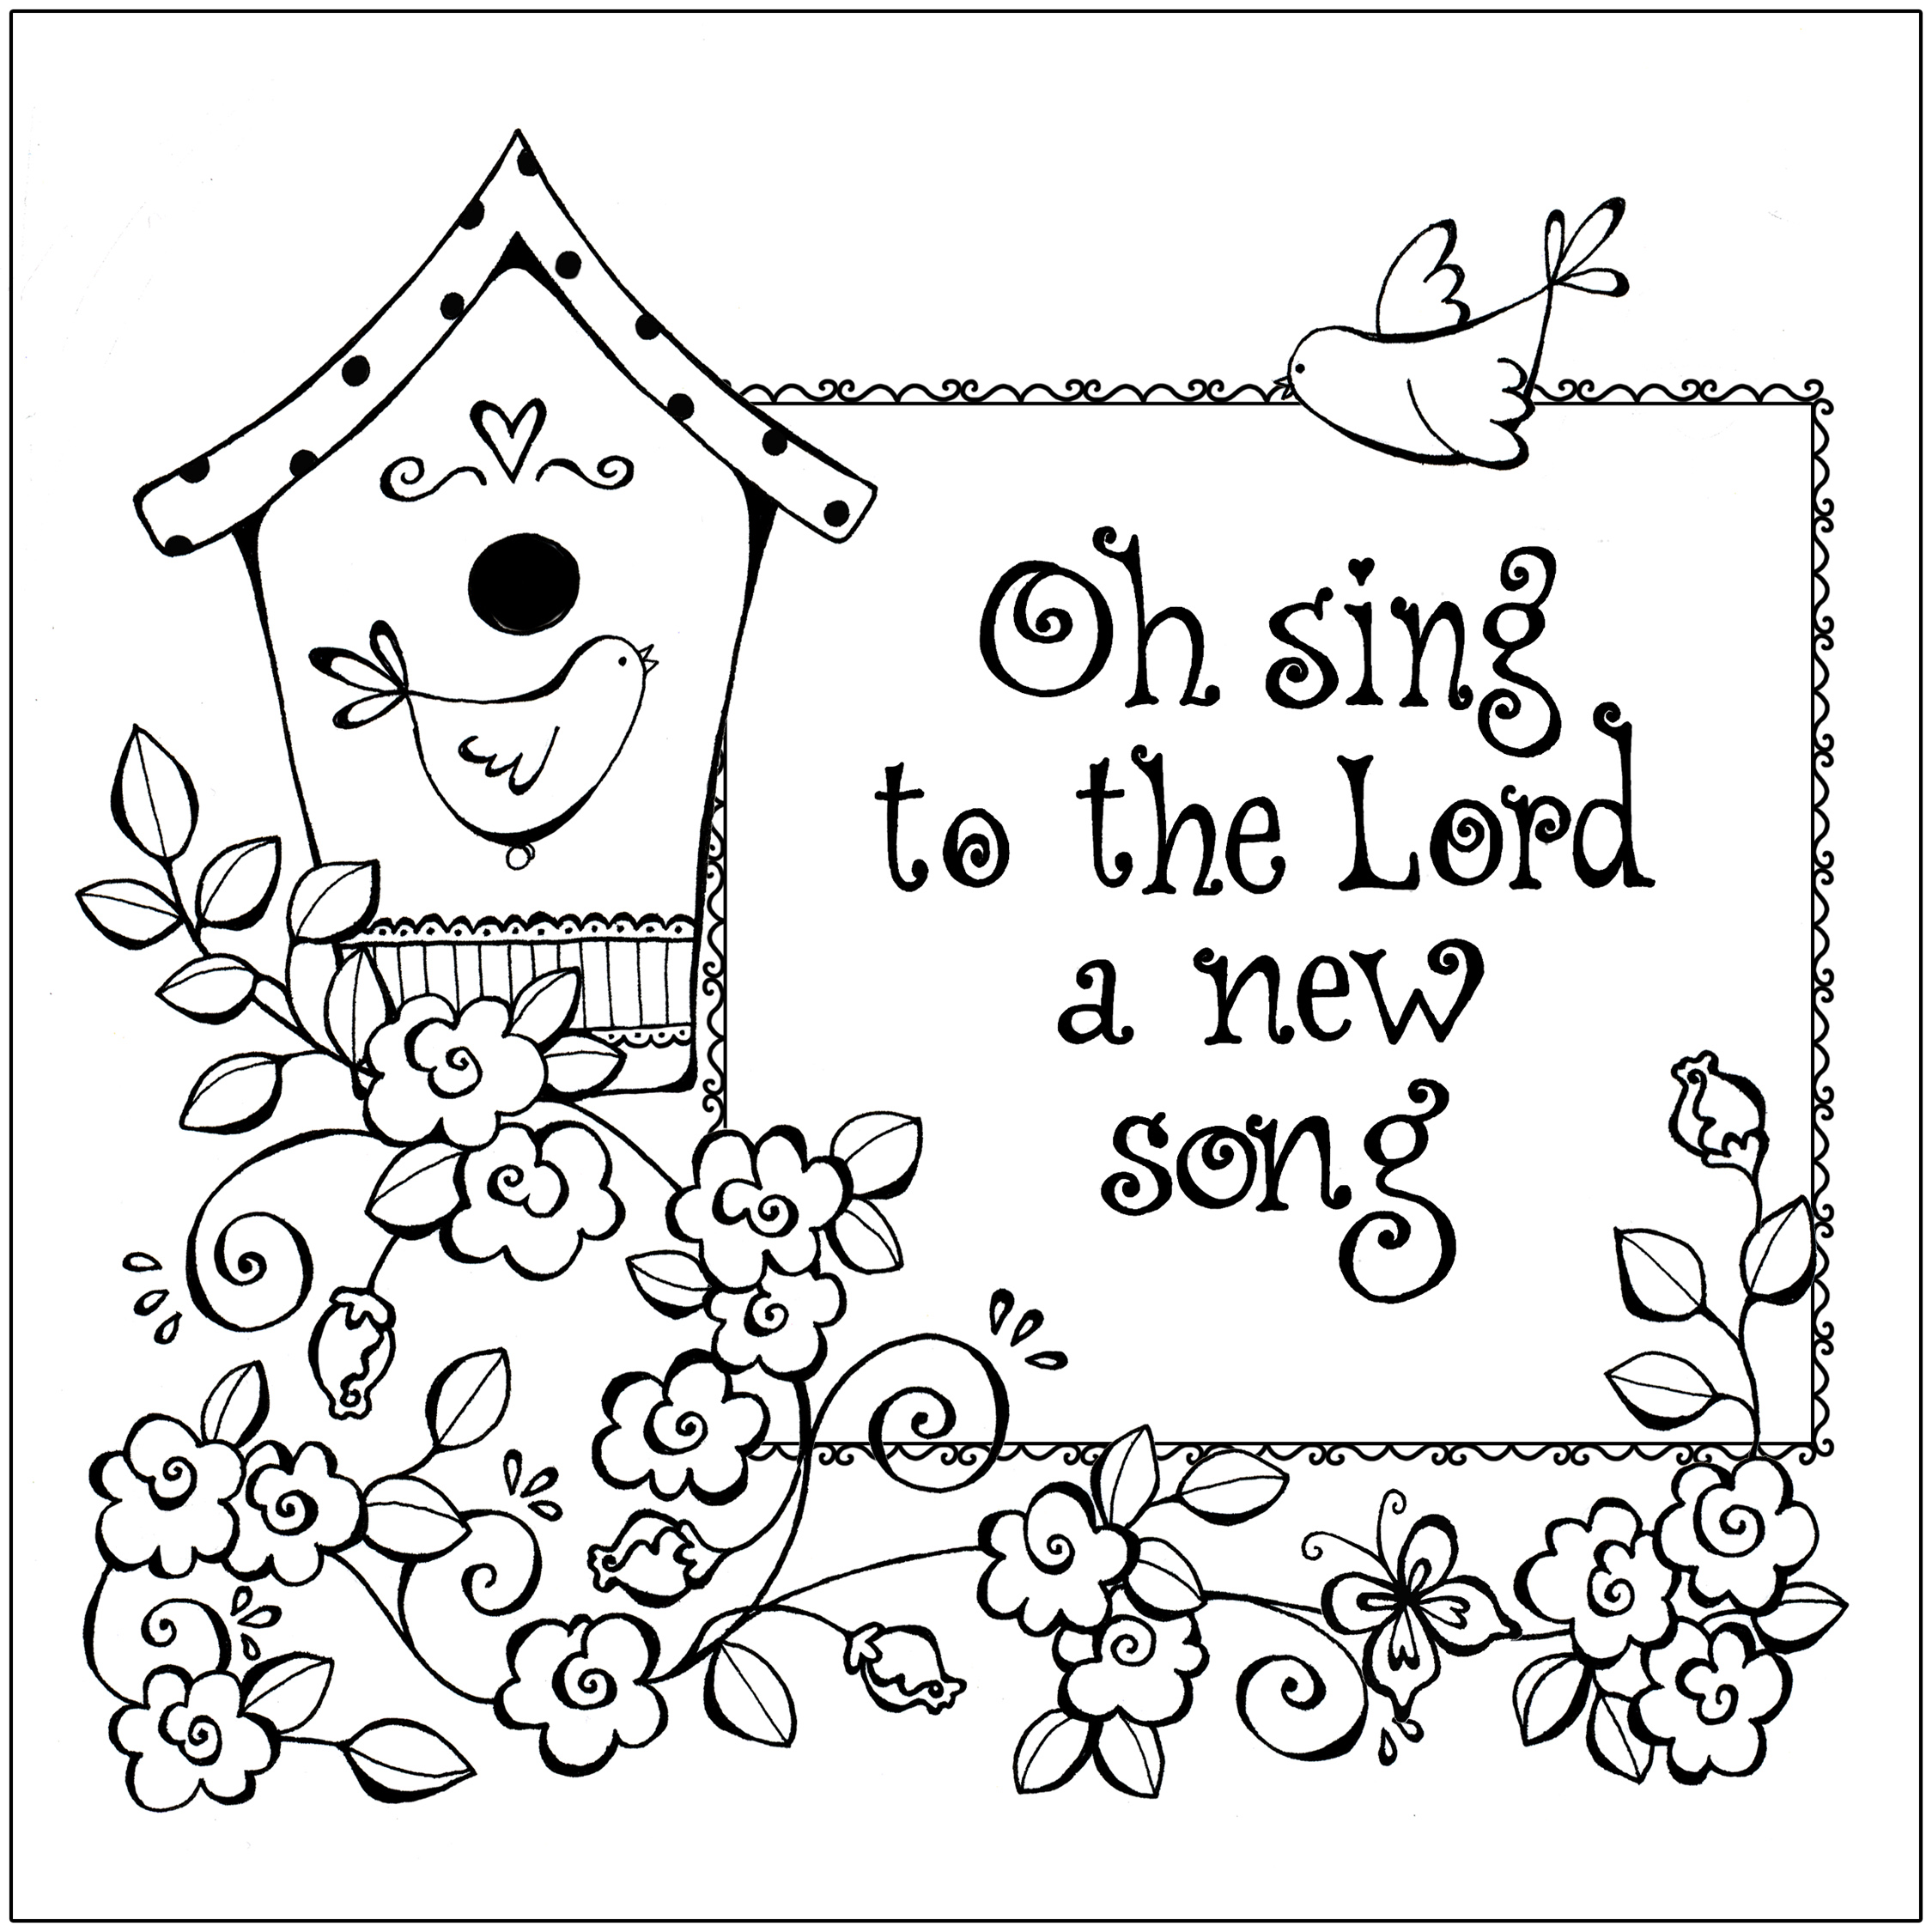 christian coloring page printable images - Religious Coloring Books